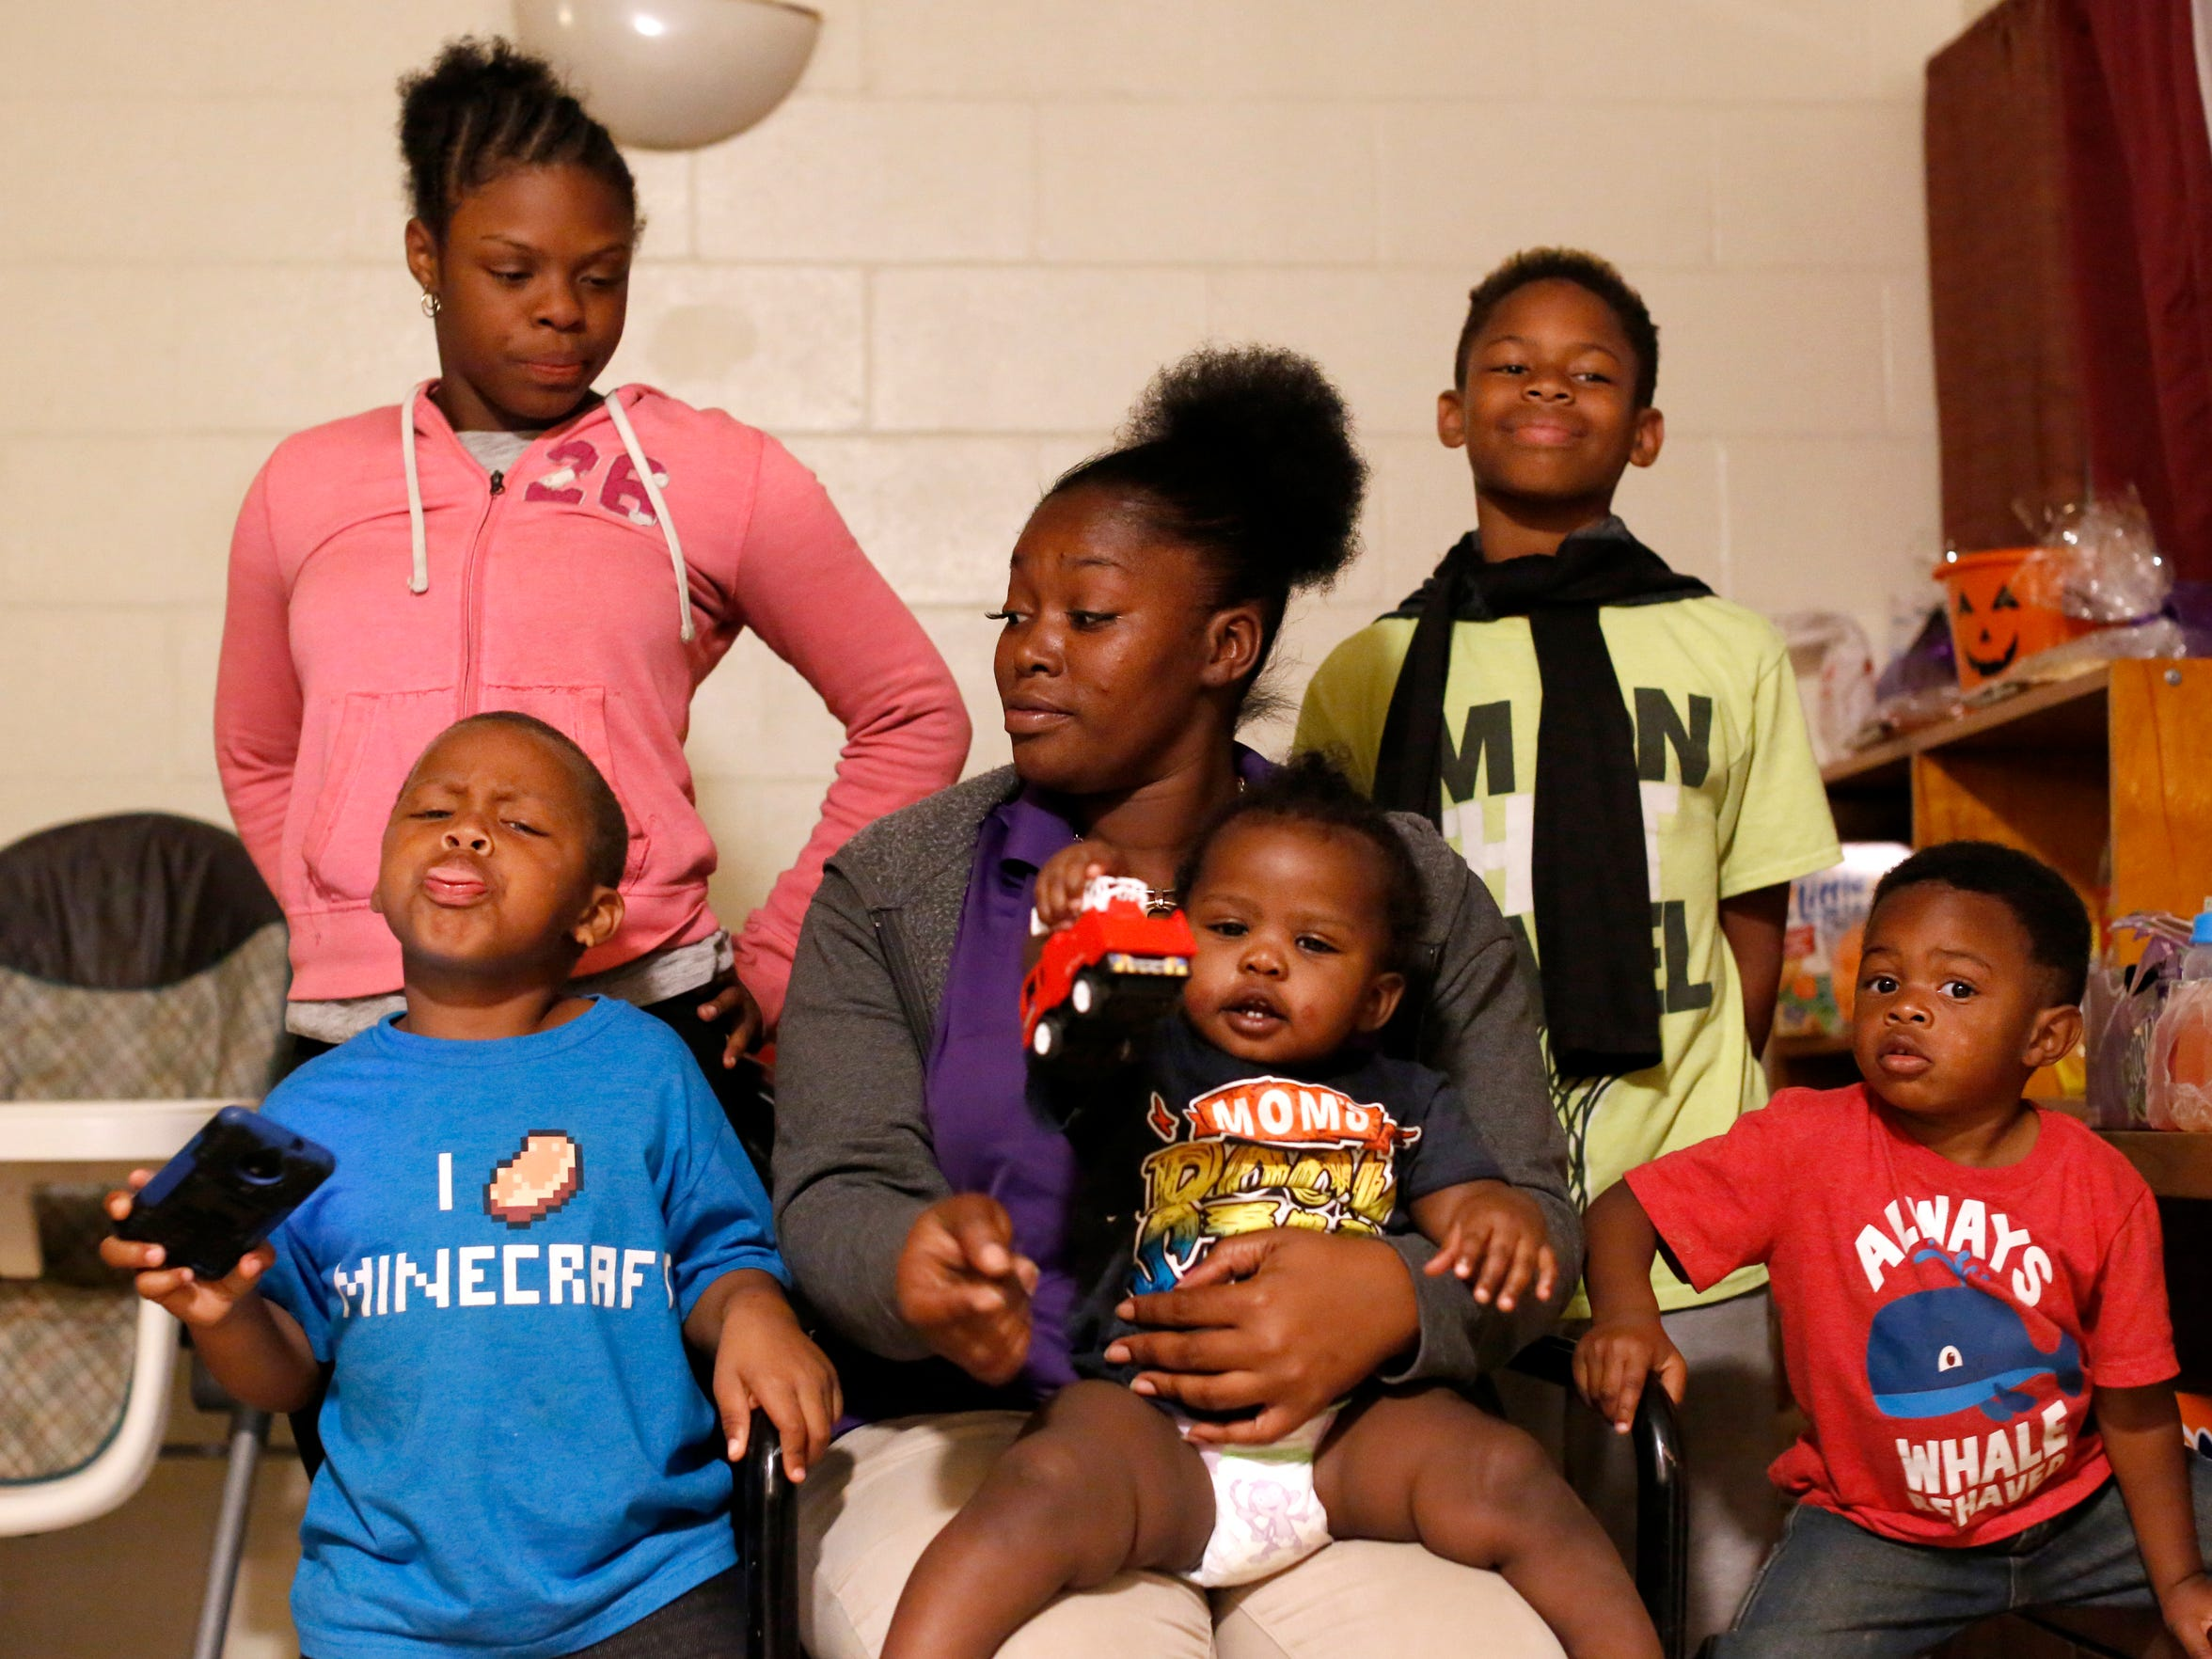 Porsche Robinson and her five children pose for a portrait at the family's apartment Nov 15. Robinson was reunited with her children in April after her case went through the newly-established Early Childhood Court.